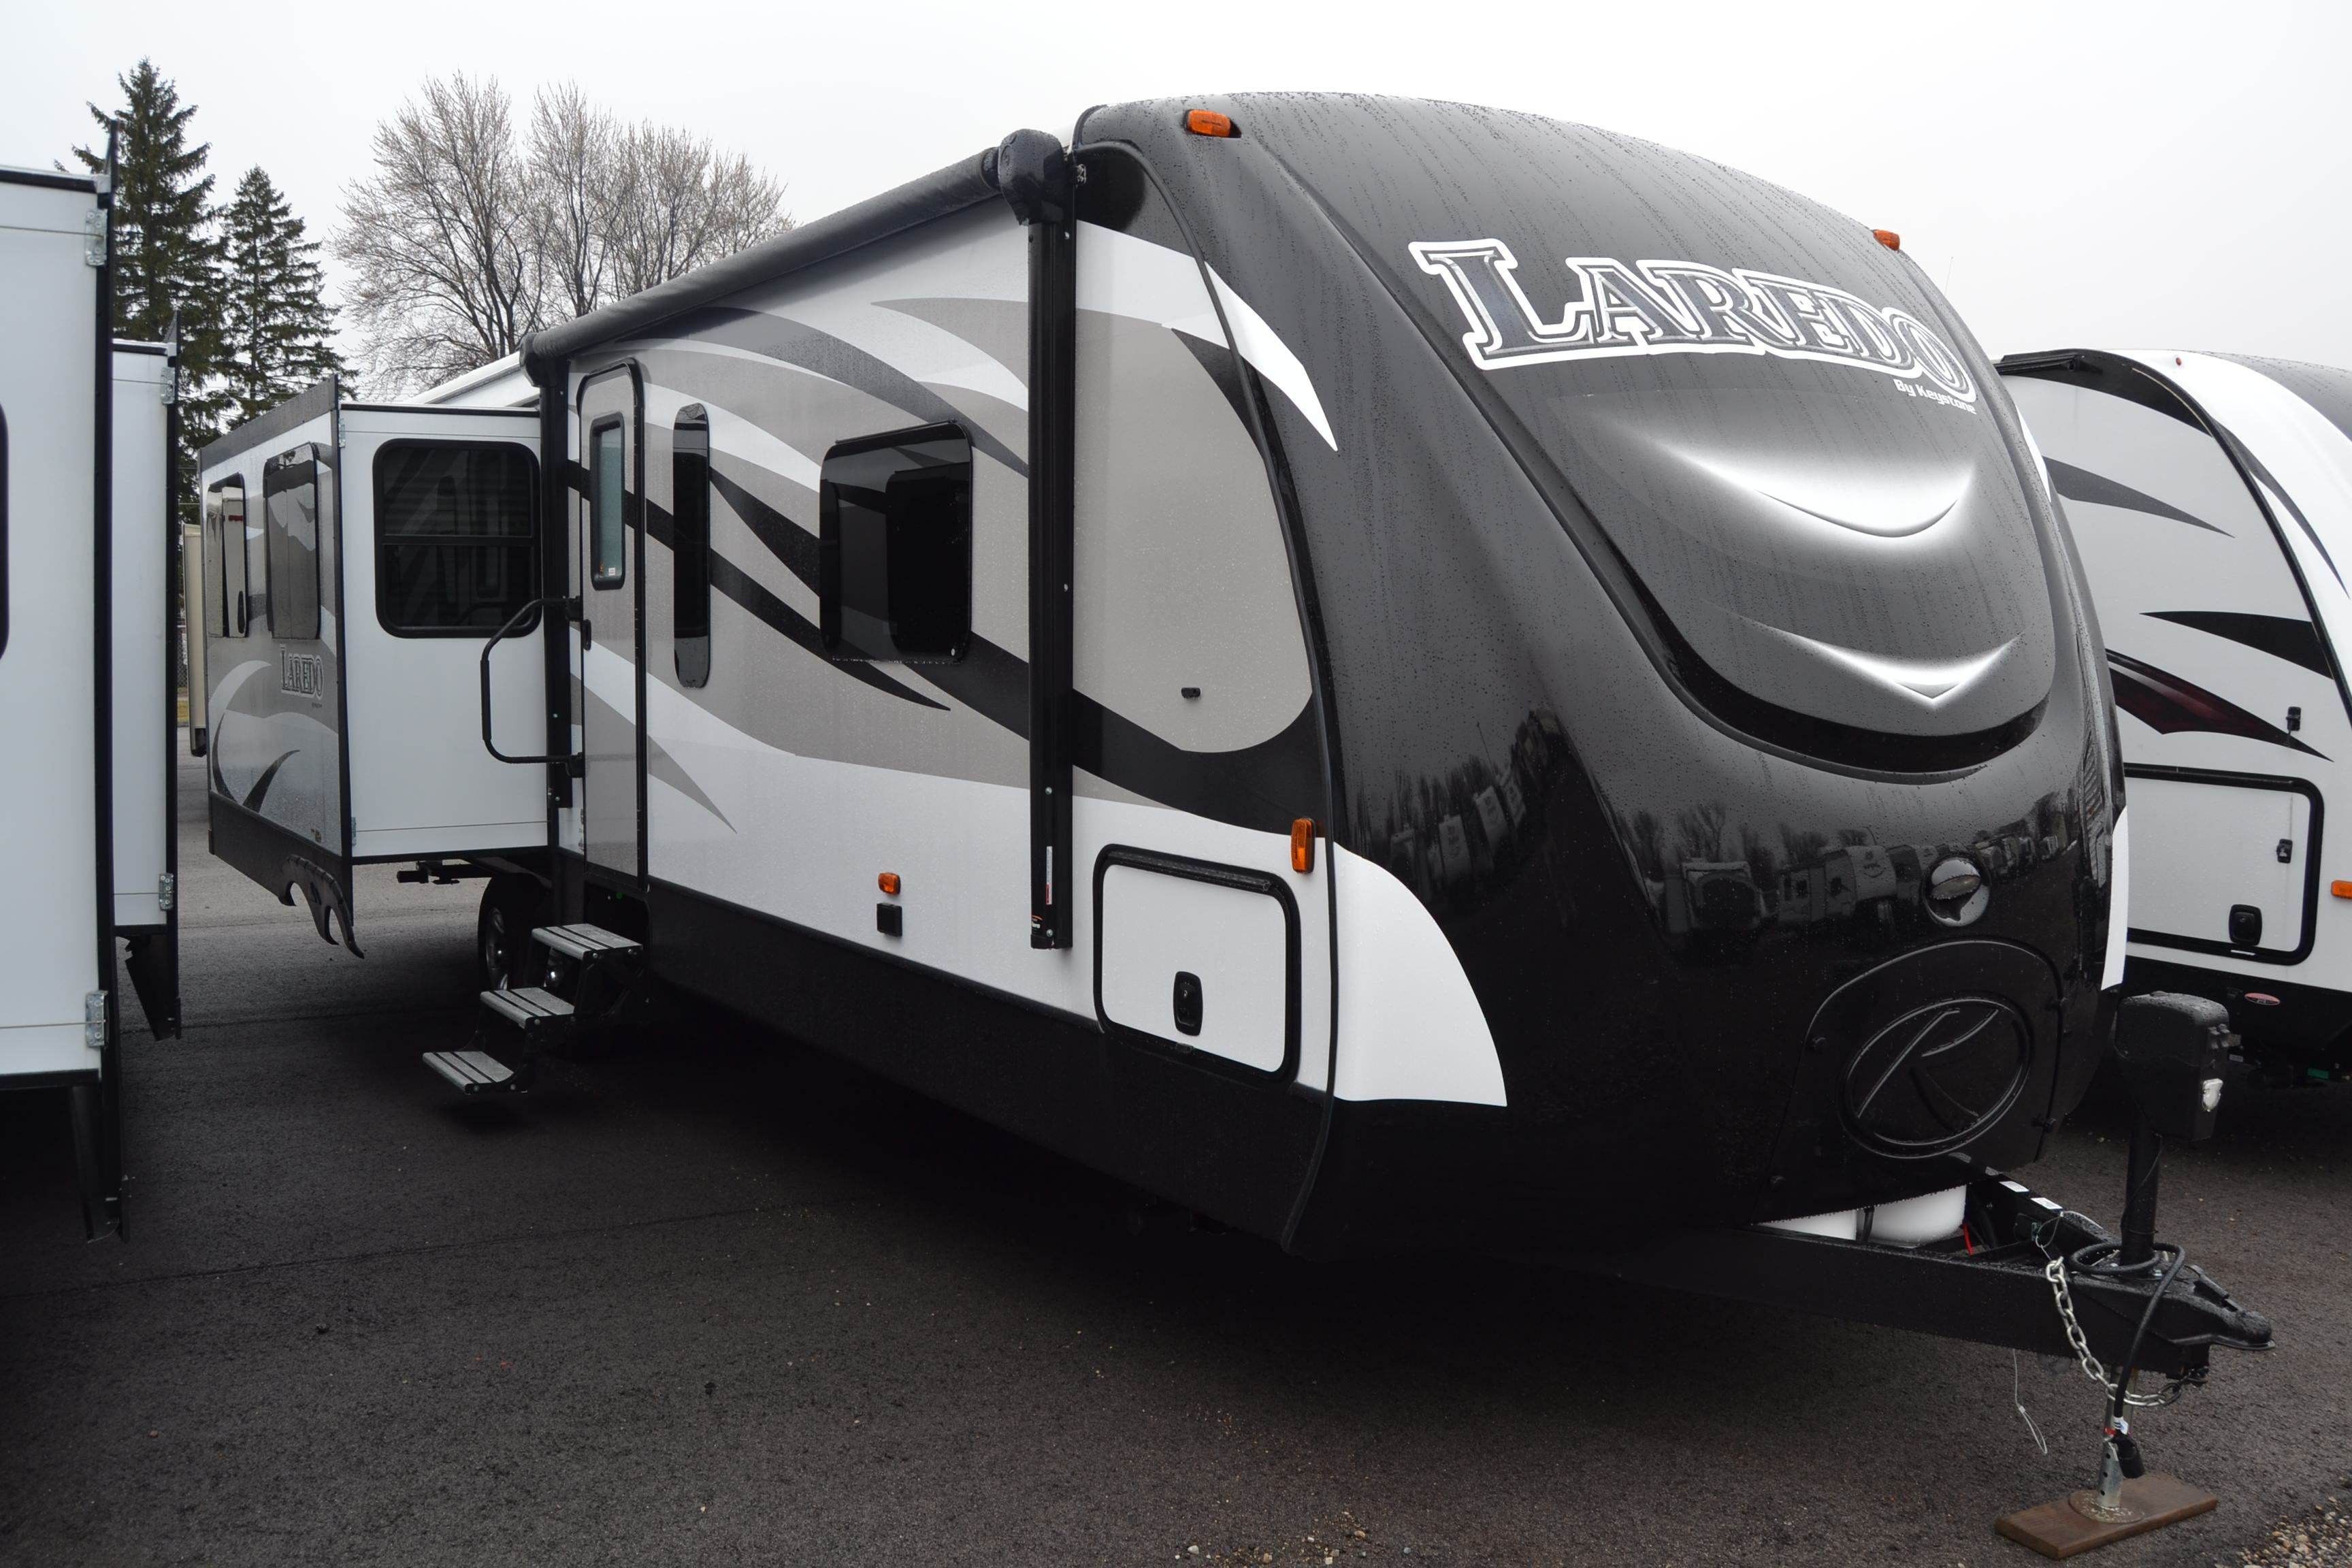 AND PRACTICAL TRAVEL TRAILER! 2016 Keystone